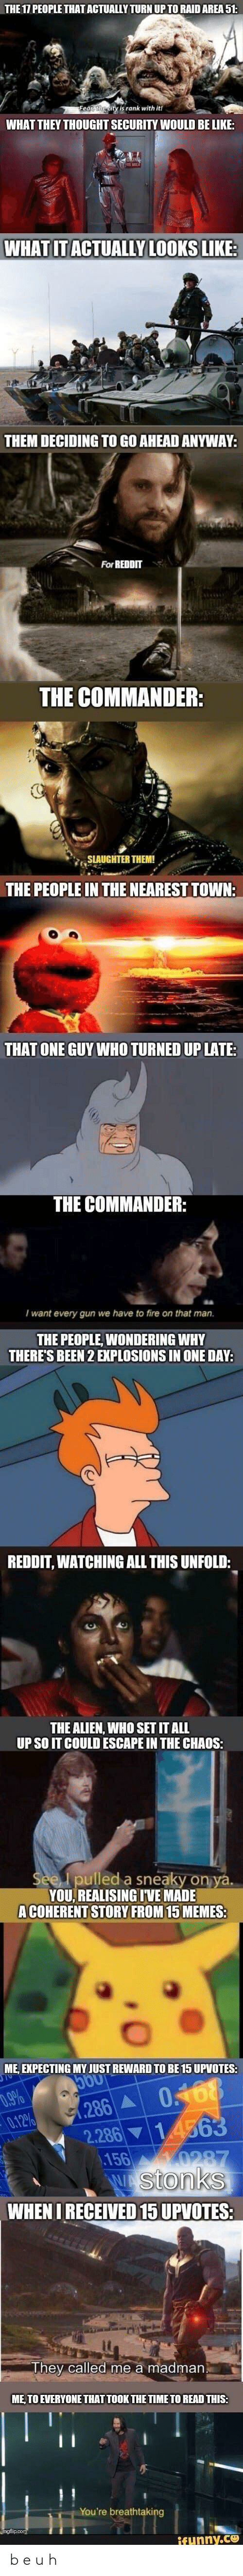 Be Like, Fire, and Memes: THE 17 PEOPLE THAT ACTUALLY TURN UP TO RAID AREA 51:  Fear the city is rank with it!  WHAT THEY THOUGHT SECURITY WOULD BE LIKE:  WHAT IT ACTUALLY LOOKS LIKE:  THEM DECIDING TO GO AHEAD ANYWAY:  For REDDIT  THE COMMANDER:  SLAUGHTER THEM!  THE PEOPLE IN THE NEAREST TOWN:  THAT ONE GUY WHO TURNED UP LATE:  THE COMMANDER:  I want every gun we have to fire on that man.  THE PEOPLE, WONDERING WHY  THERE'S BEEN 2 EXPLOSIONS IN ONE DAY:  REDDIT, WATCHING ALL THIS UNFOLD:  THE ALIEN, WHO SET IT ALL  UP SO IT COULD ESCAPE IN THE CHAOS:  See, I pulled a sneaky on ya.  YOU, REALISING IVE MADE  A COHERENT STORY FROM 15 MEMES:  ME, EXPECTING MY JUST REWARD TO BE 15 UPVOTES:  500  0.9%  0.12%  0.168  1.286 A  14563  2.286  156  0287  Wstonks  WHEN I RECEIVED 15 UPVOTES:  They called me a madman.  ME, TO EVERYONE THAT TOOK THE TIME TO READ THIS:  You're breathtaking  umgflip.com  ifunny.co b e u h